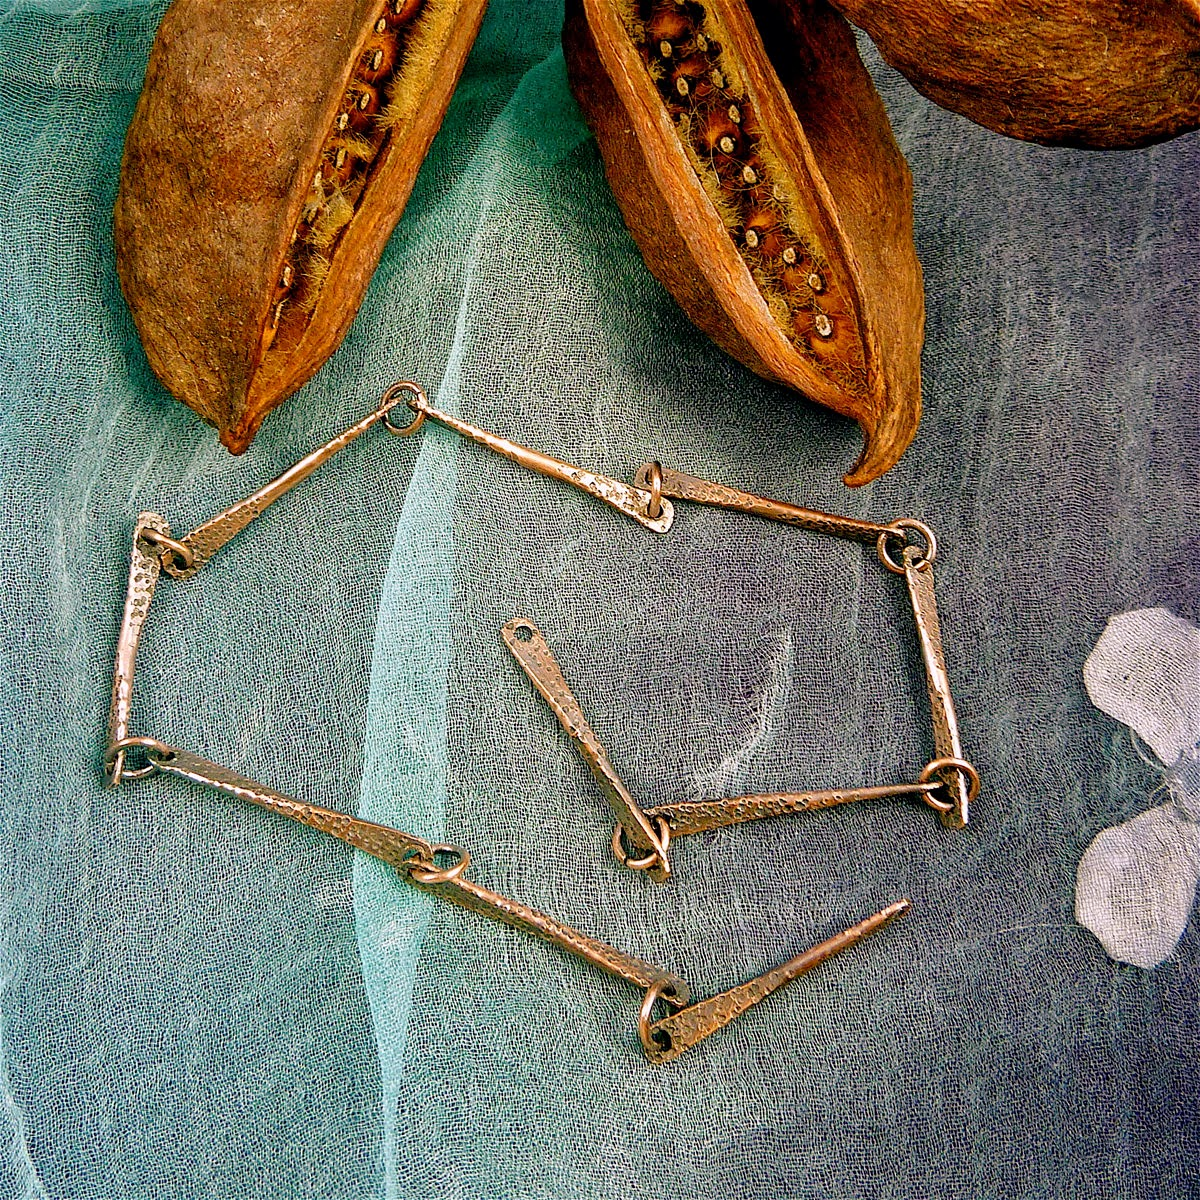 Sharilyn miller free tutorial bone links bone links are easy to make wire links that quickly assemble into an elegant necklace chain i like using heavy gauge wire for my linksanything from baditri Choice Image